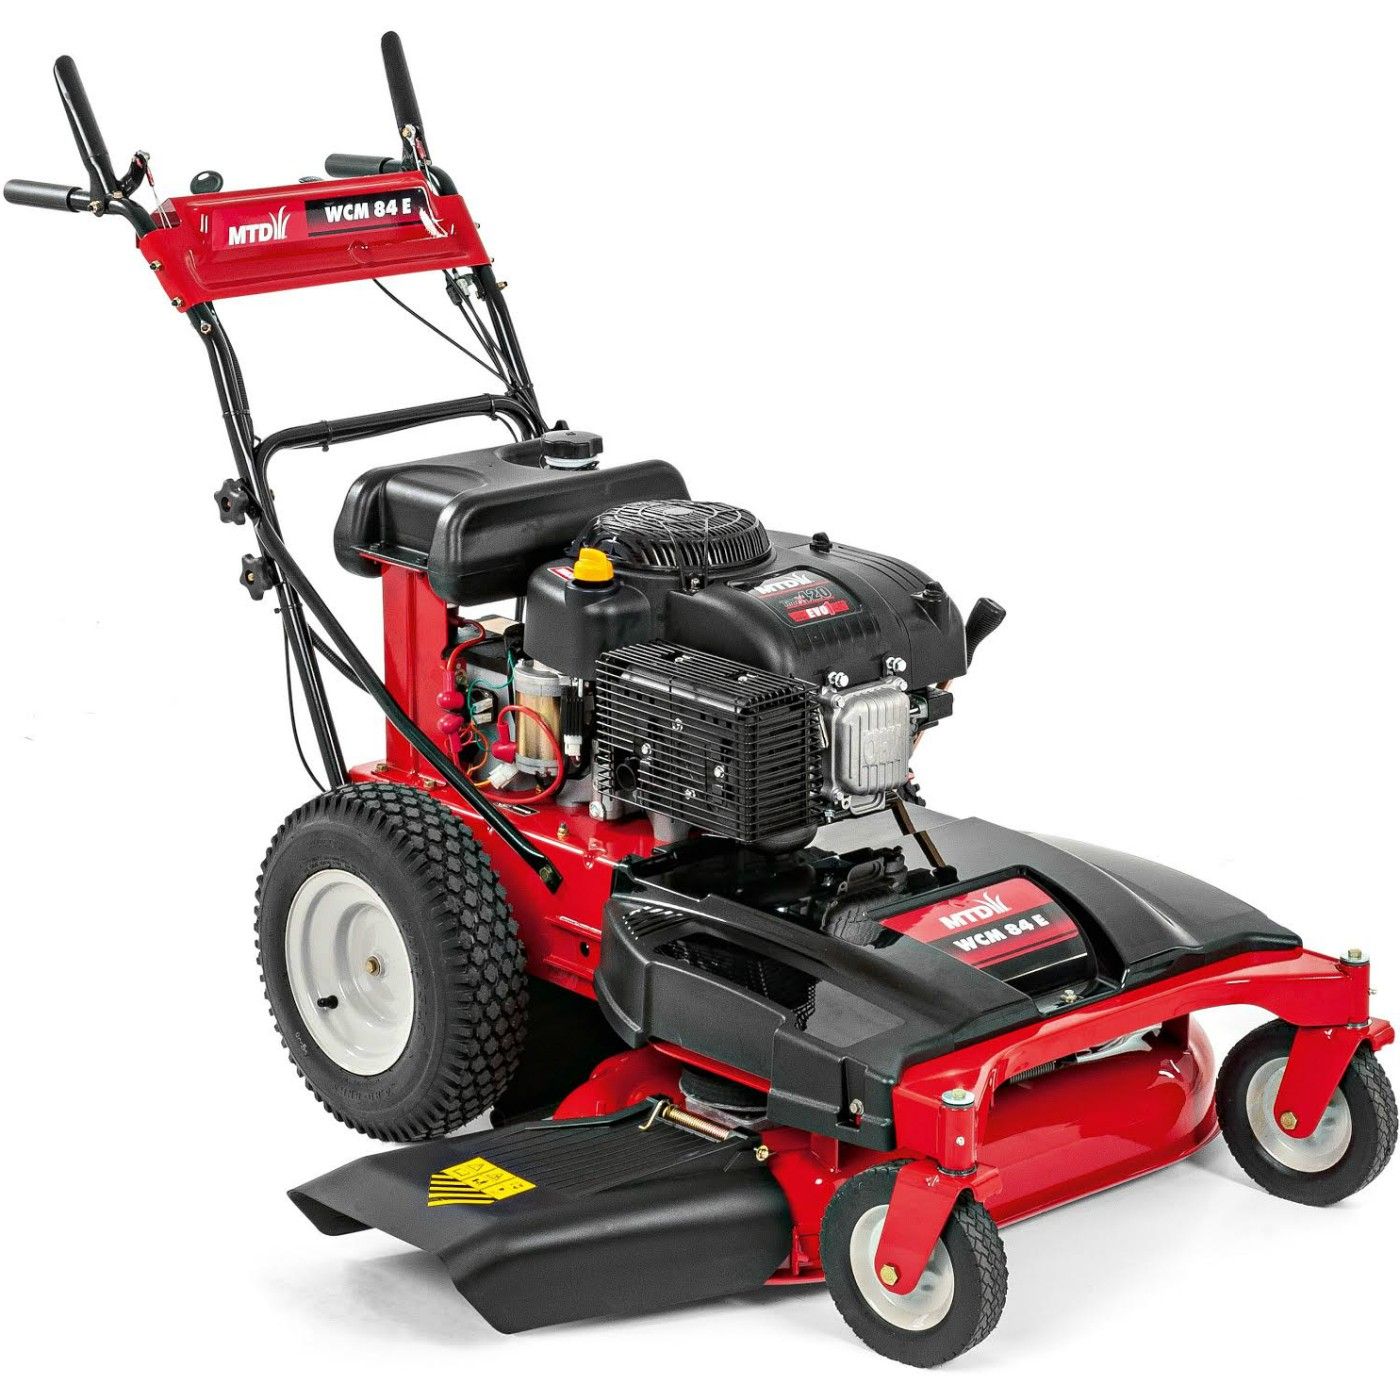 Lawnflite WCM84E Wide-Cut Lawn Mower (with Electric Start)